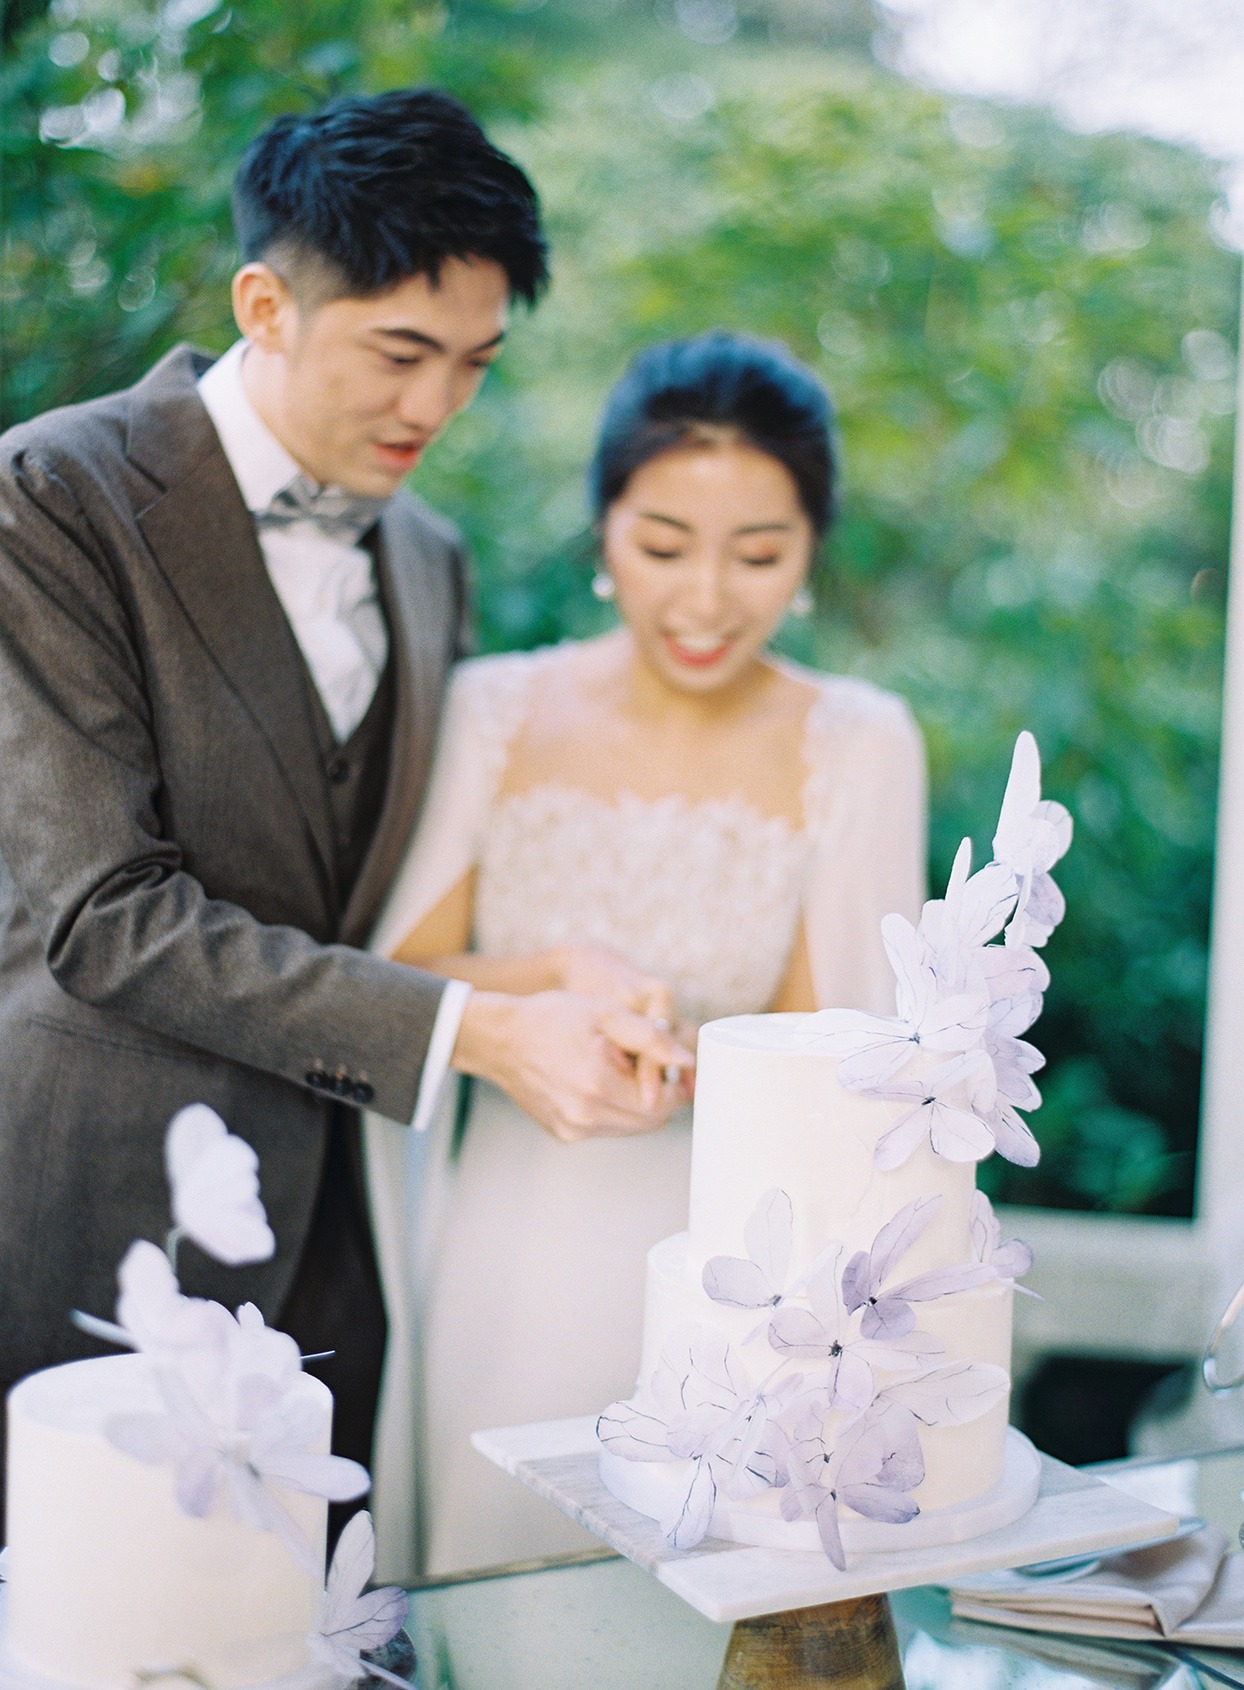 jackie ben couple cutting wedding cake